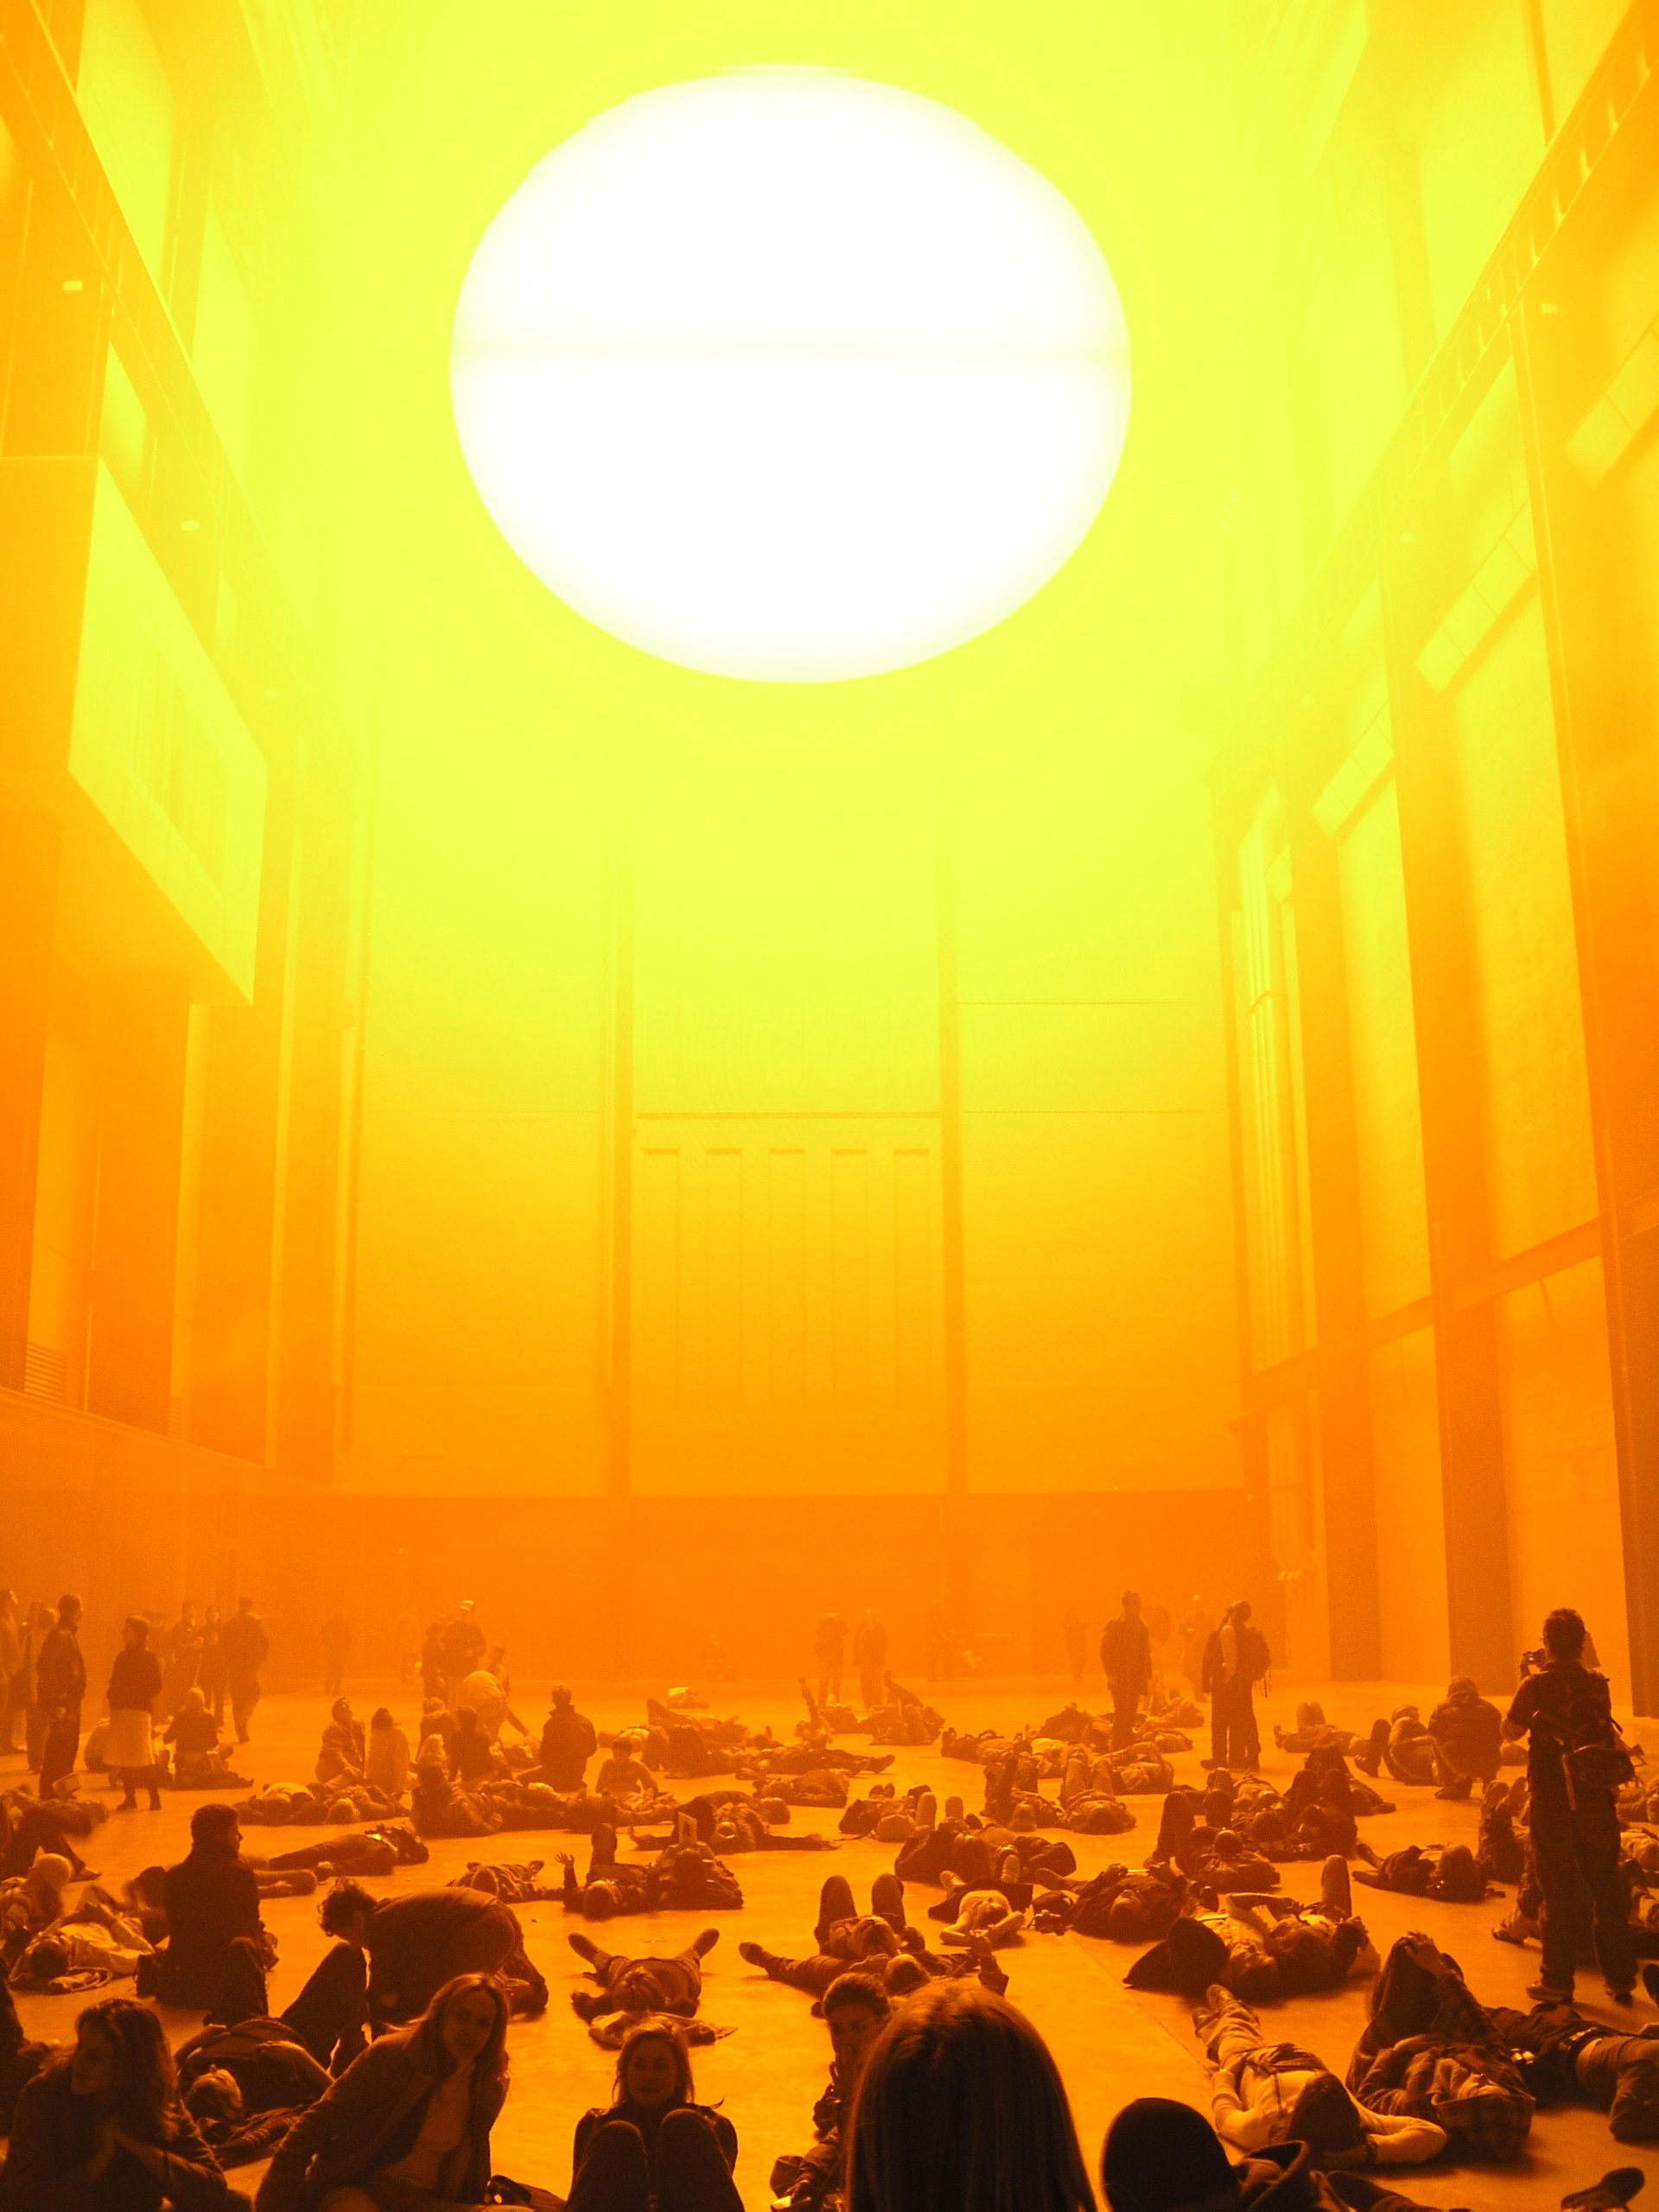 Fig. 3 Olafur Eliasson, Weather Project, 2003